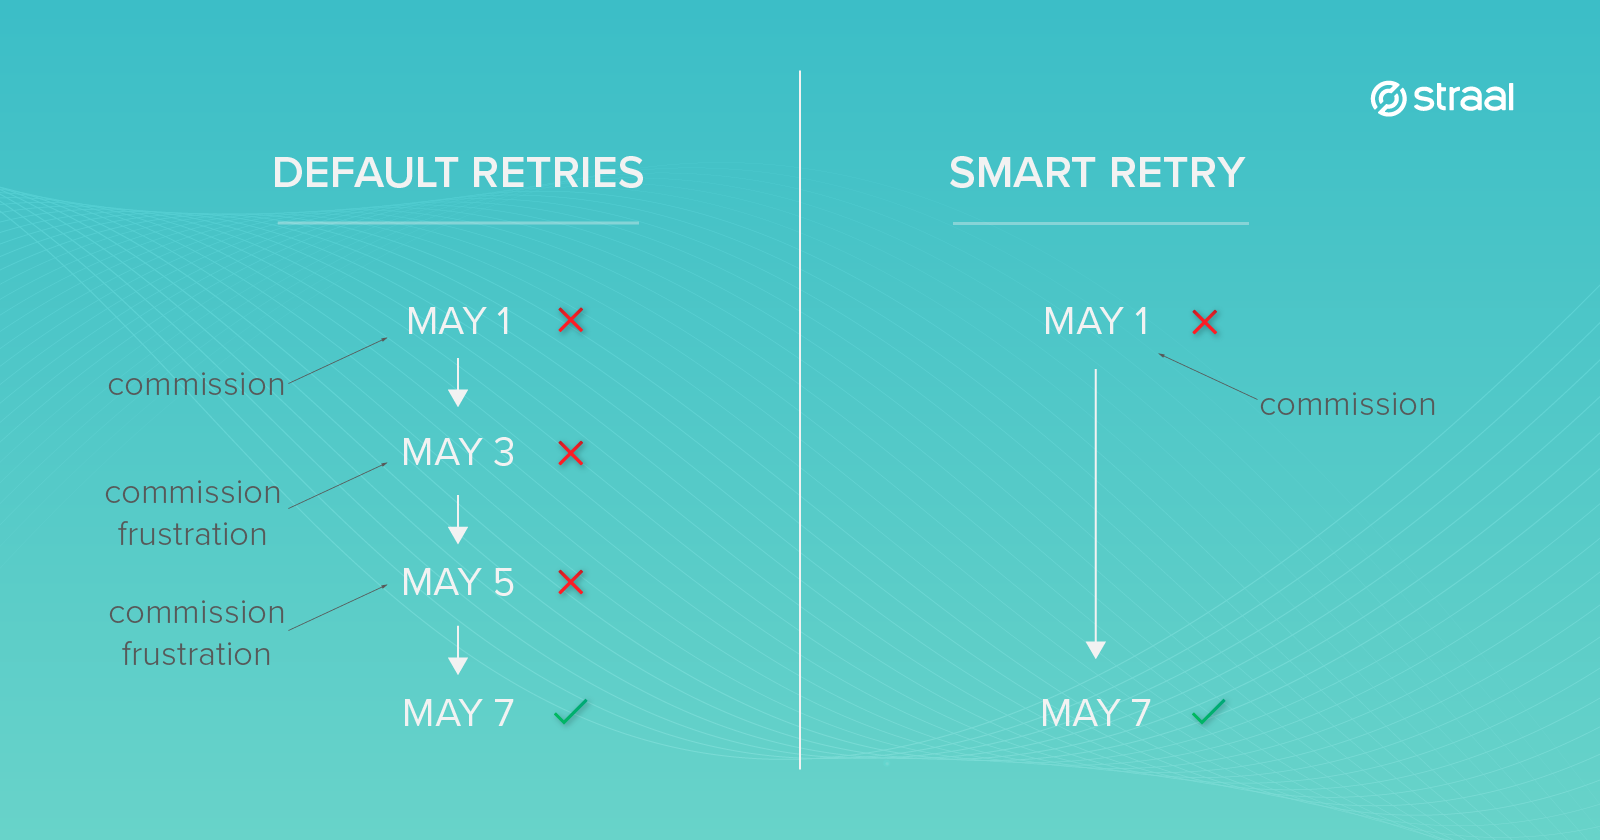 Default retries vs. Smart Retry